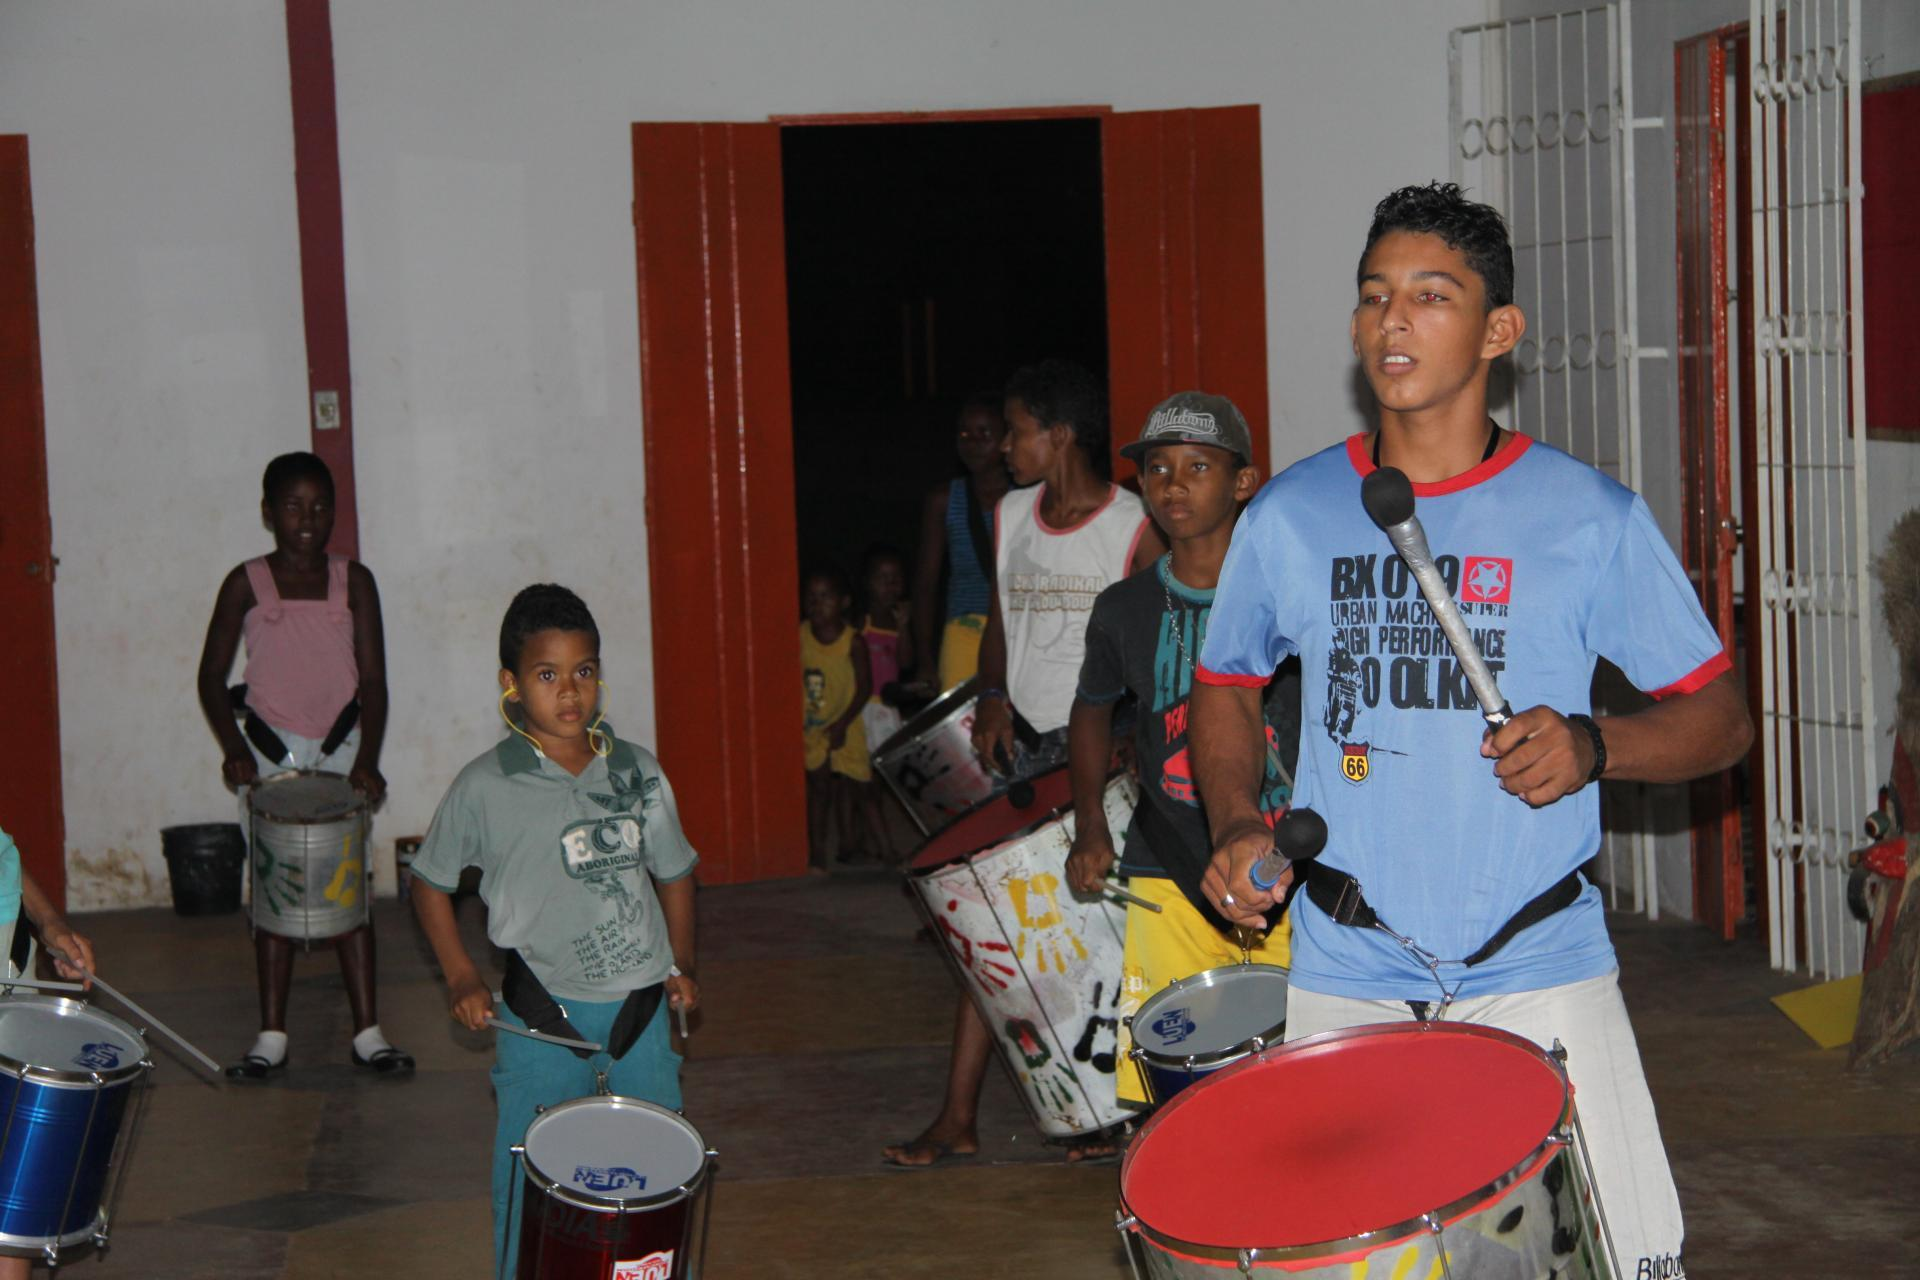 A percussion group in Bahia.